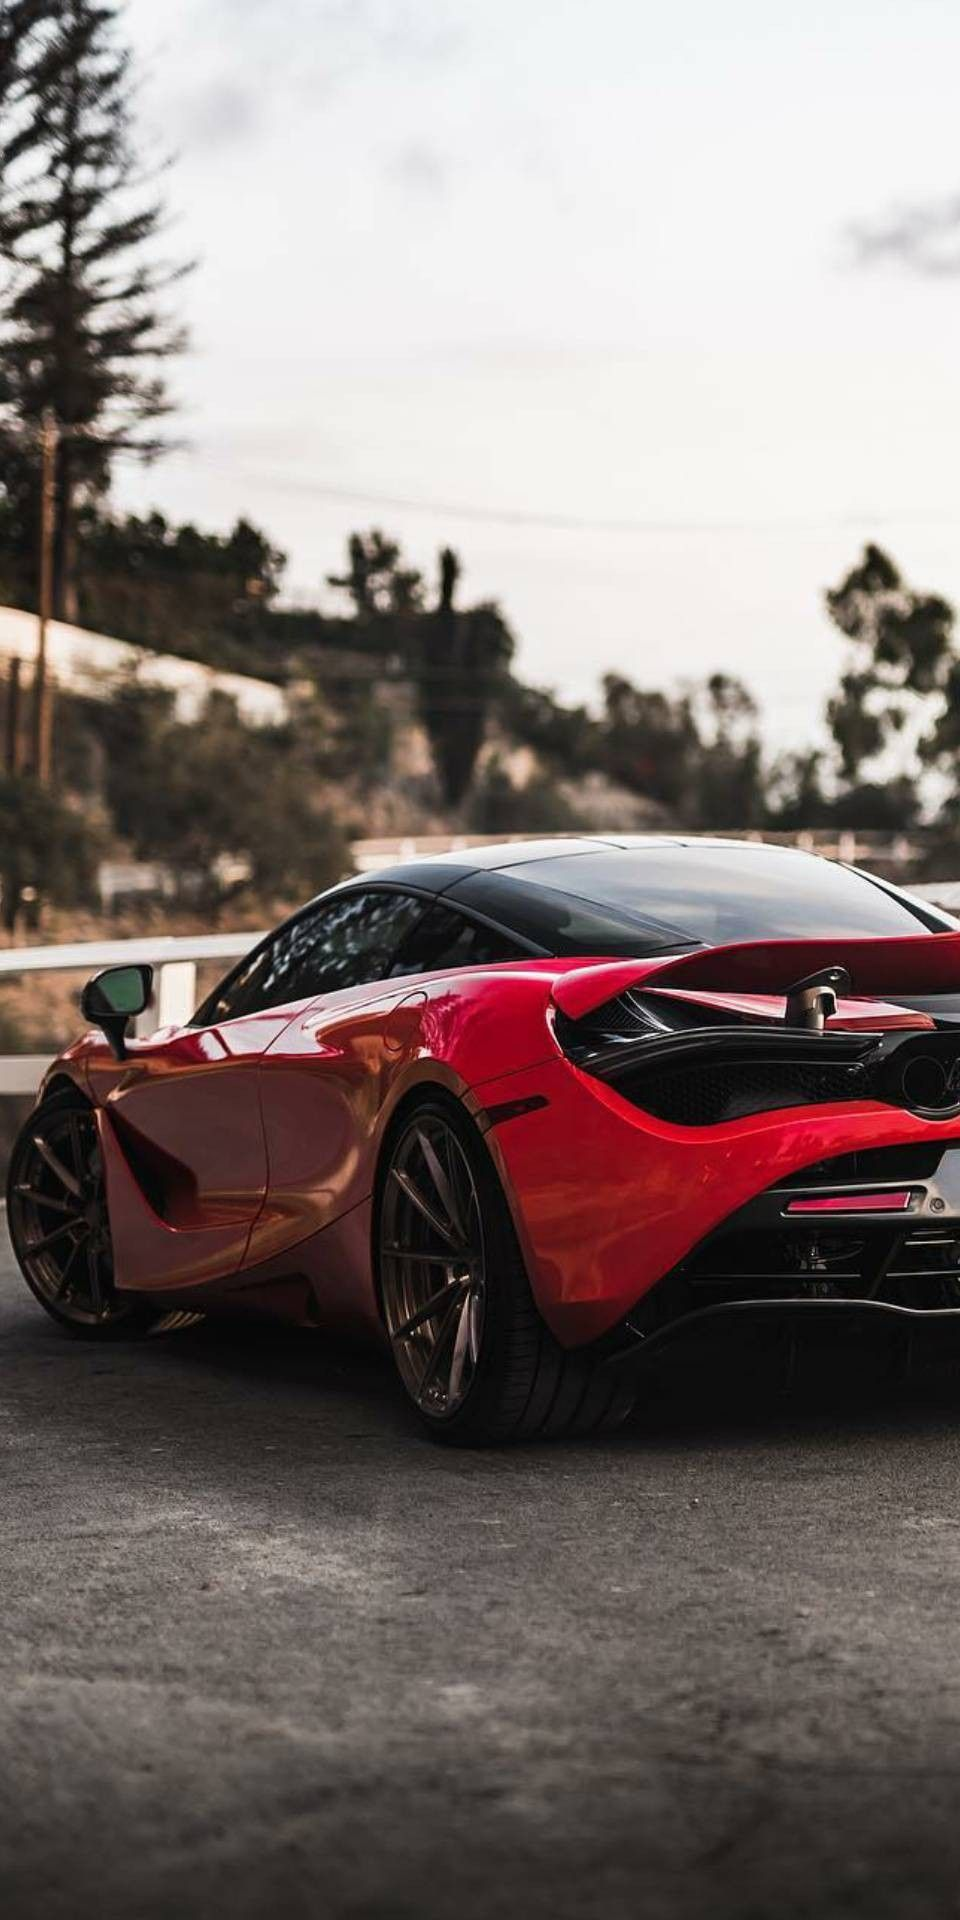 Pin By Daniello Foreign On Cars Wallpapers In 2020 New Car Wallpaper Car Wallpapers Street Racing Cars